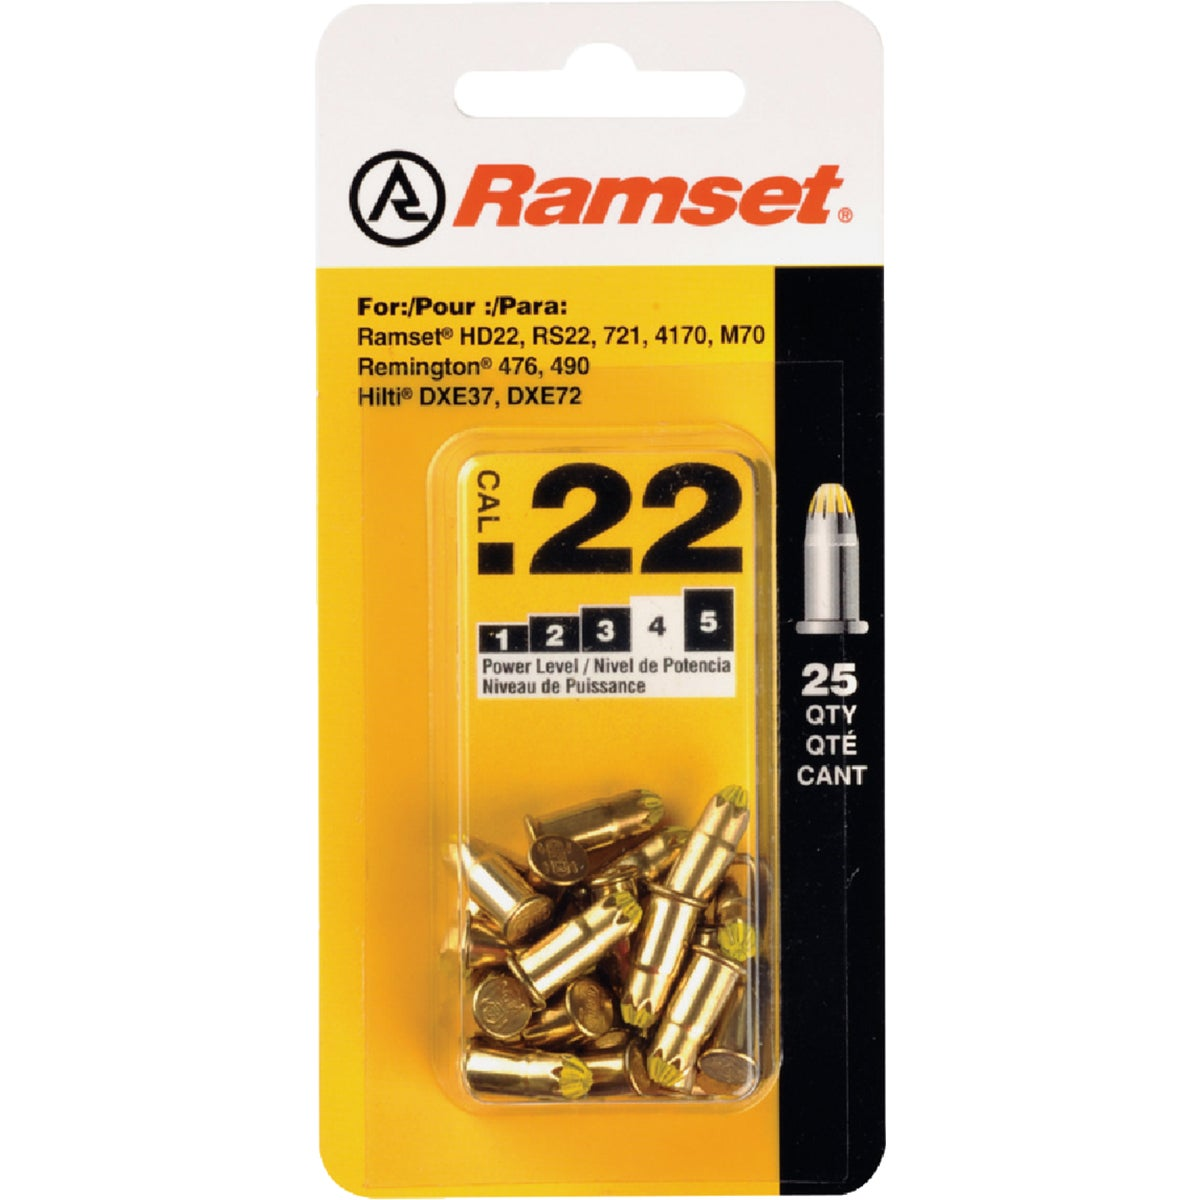 ITW Brands 25PK .22 YELLOW LOADS 50077